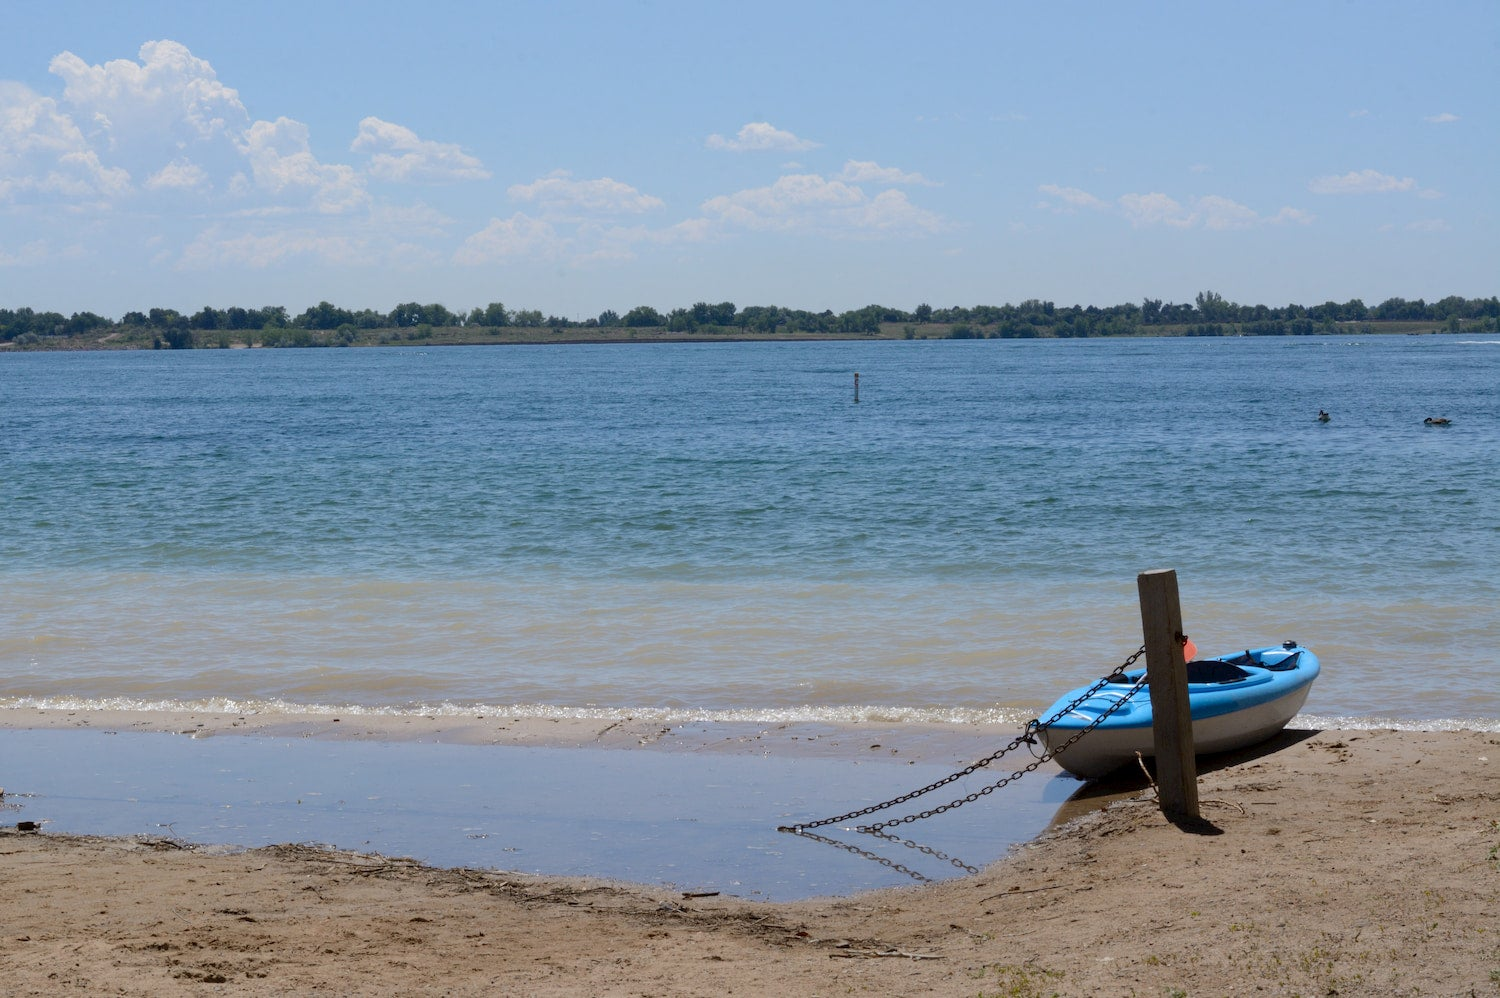 kayak tied to a pole at the edge of standley lake